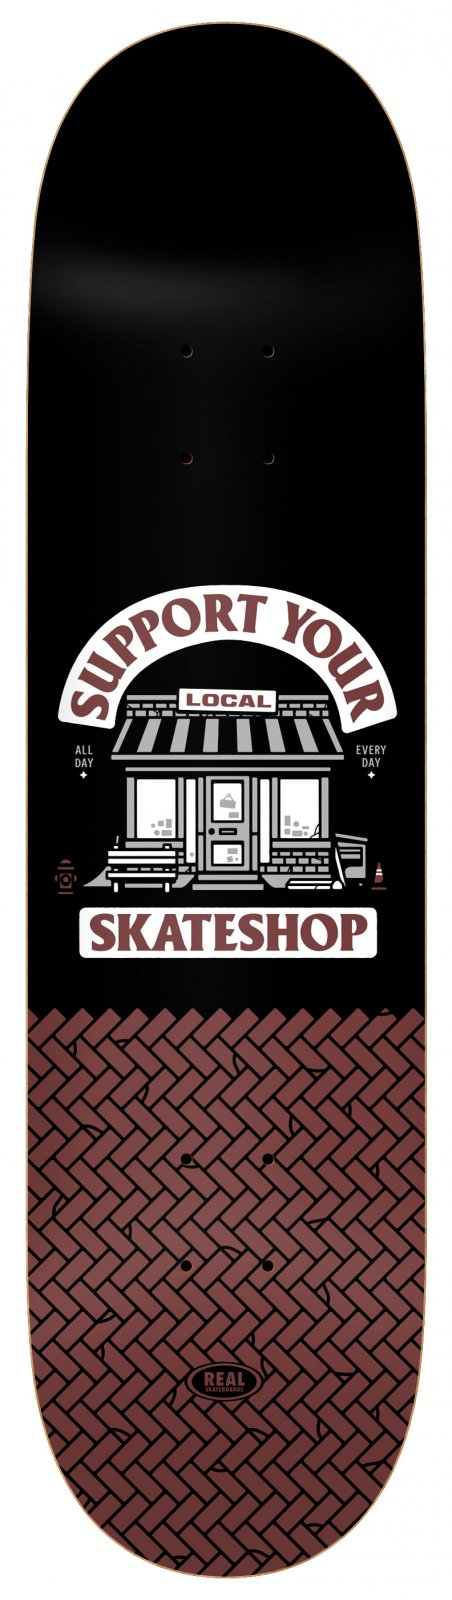 Real Skateshop Day 8.5 x 31.8